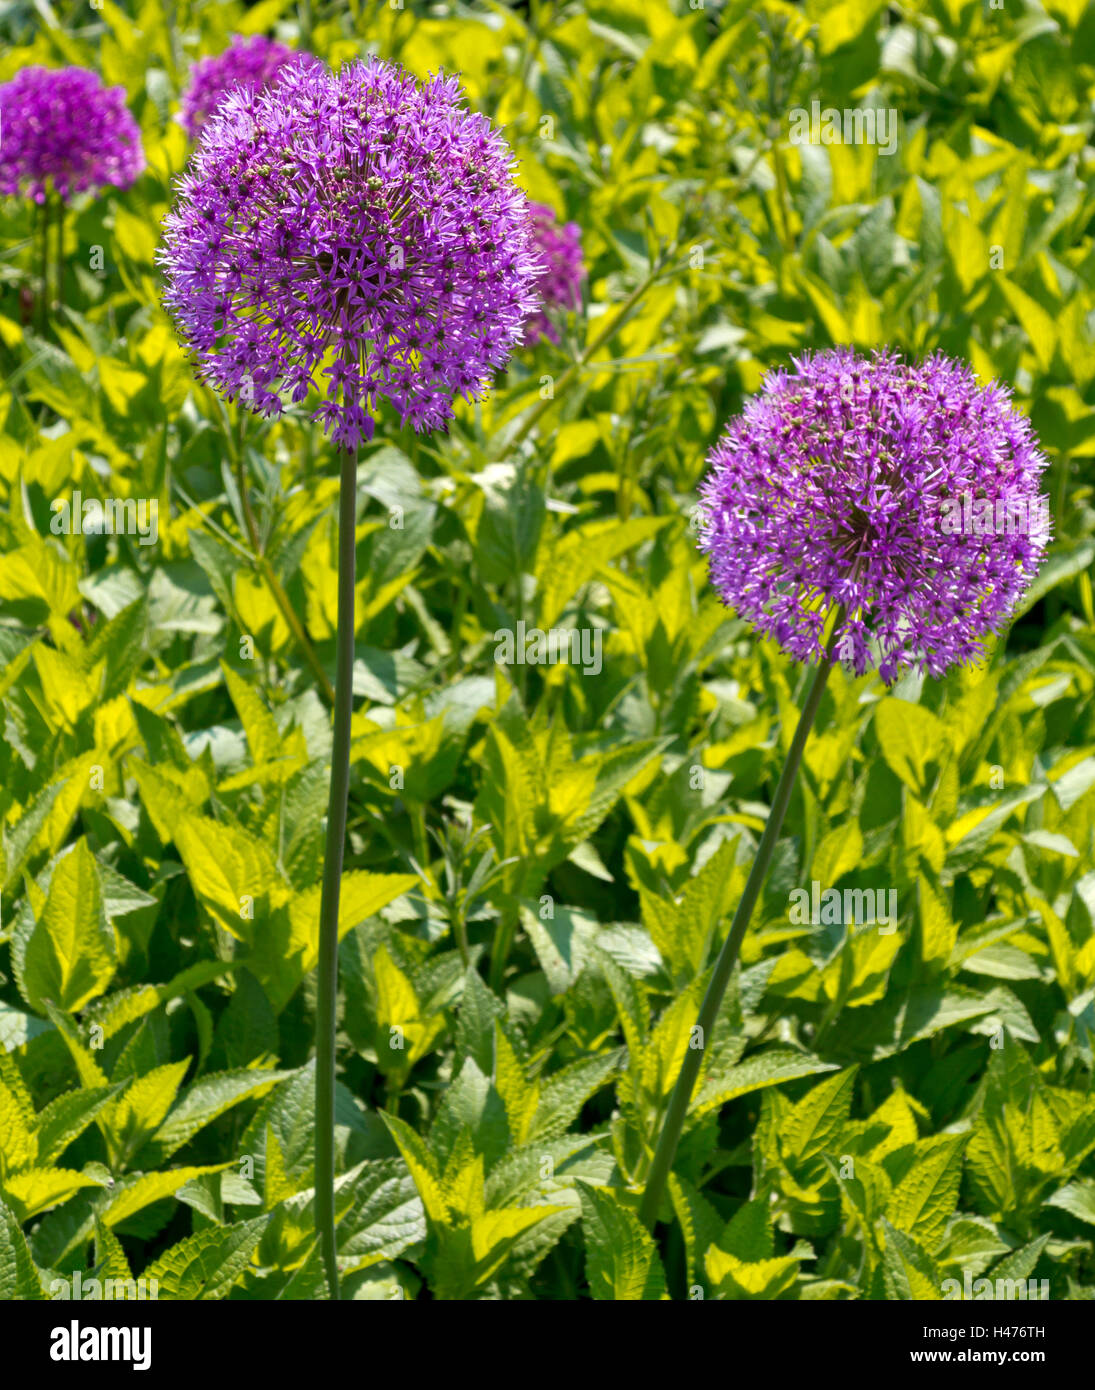 Purple allium flowers growing in a garden in early summer a genus of monocotyledonous flowering plants Stock Photo